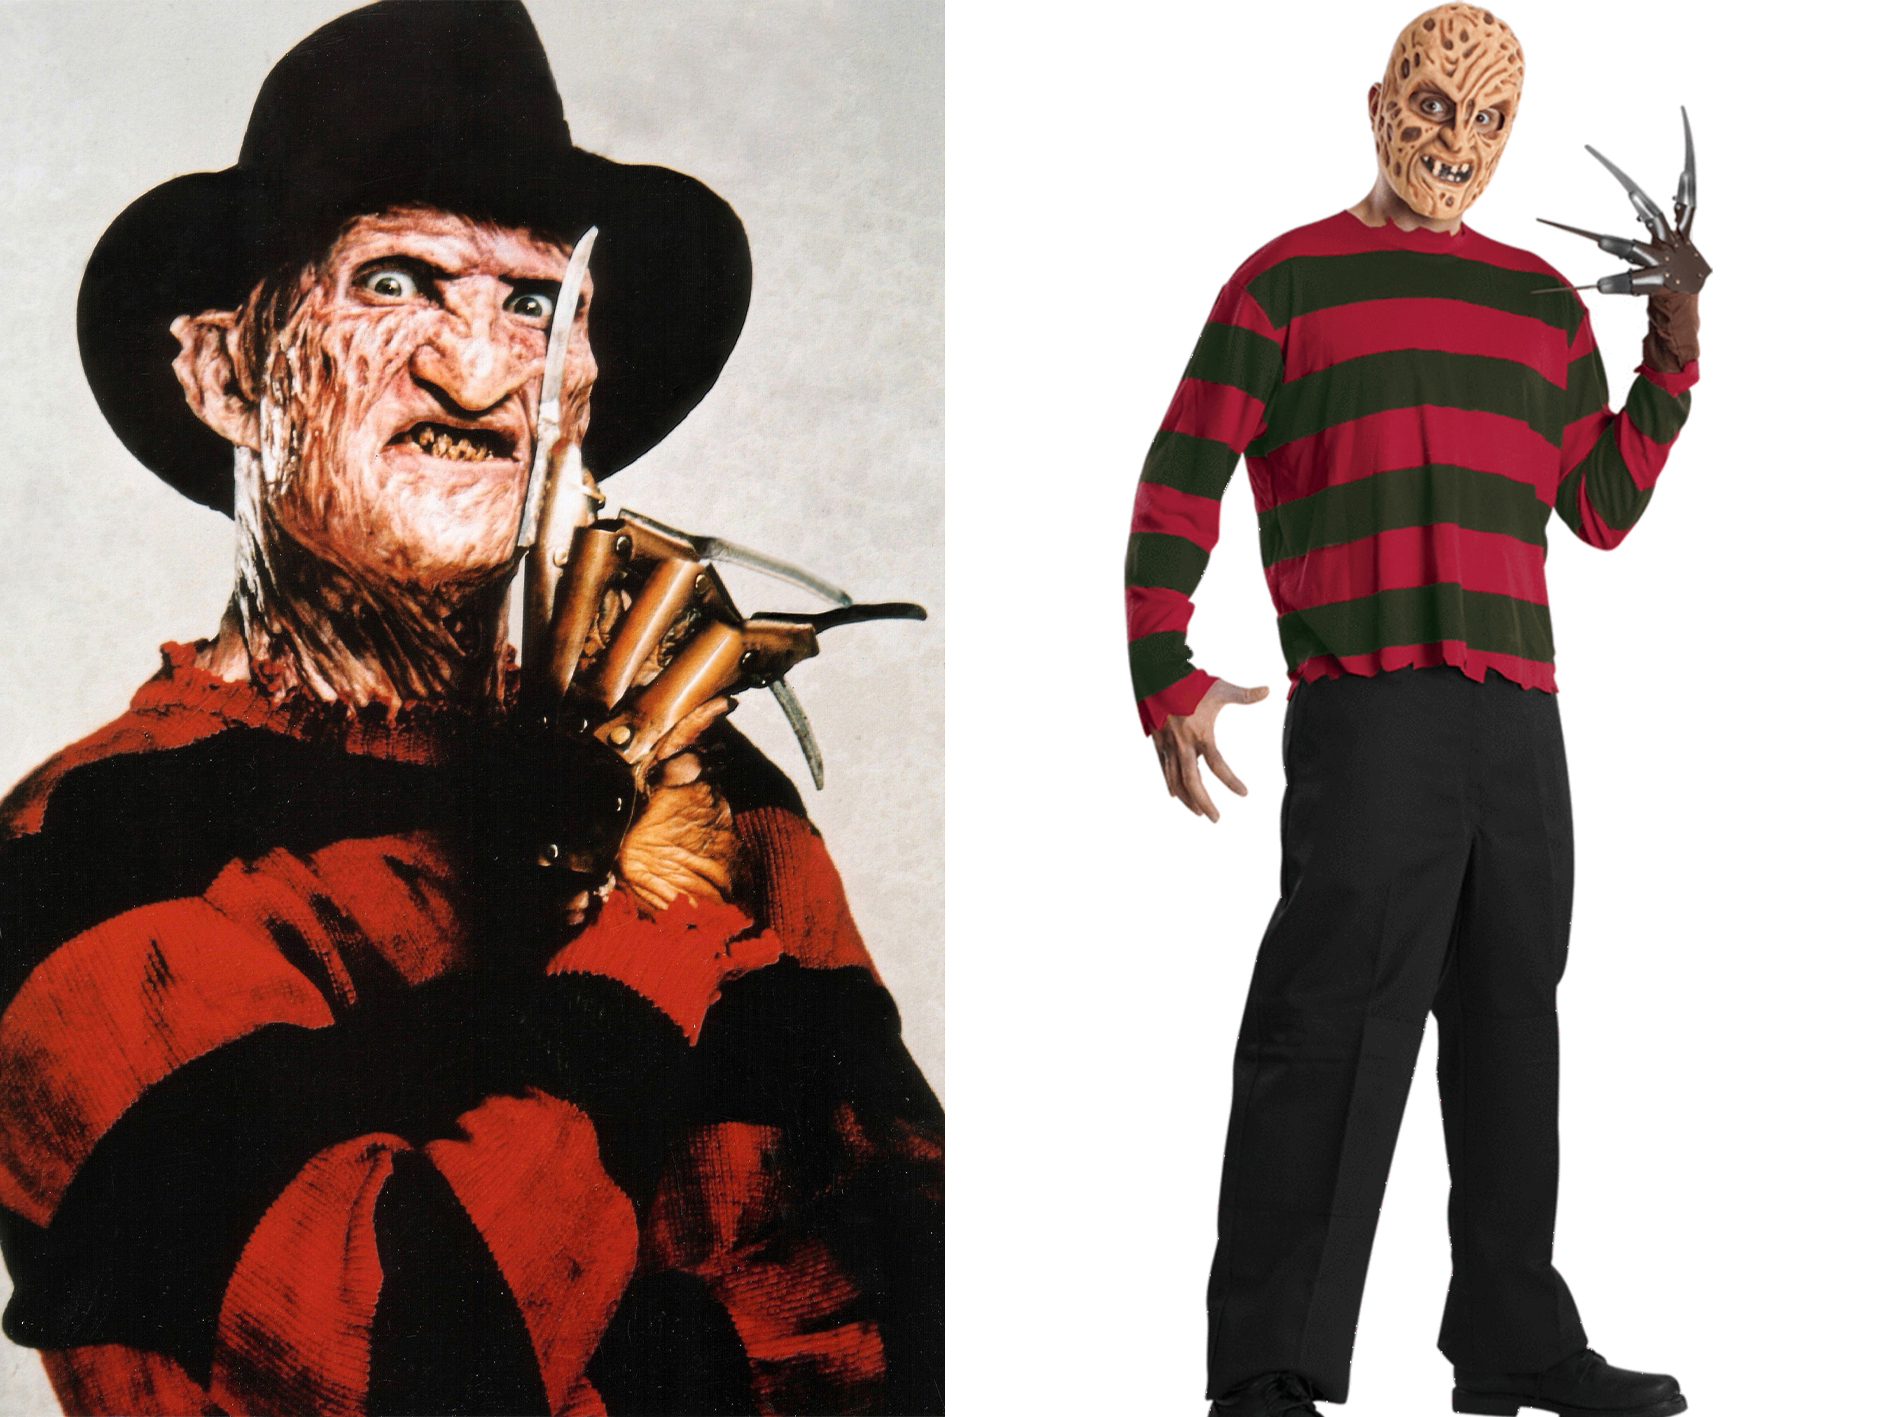 Freddy 15 Halloween Costumes Inspired By The 80s - Who Will You Go As?